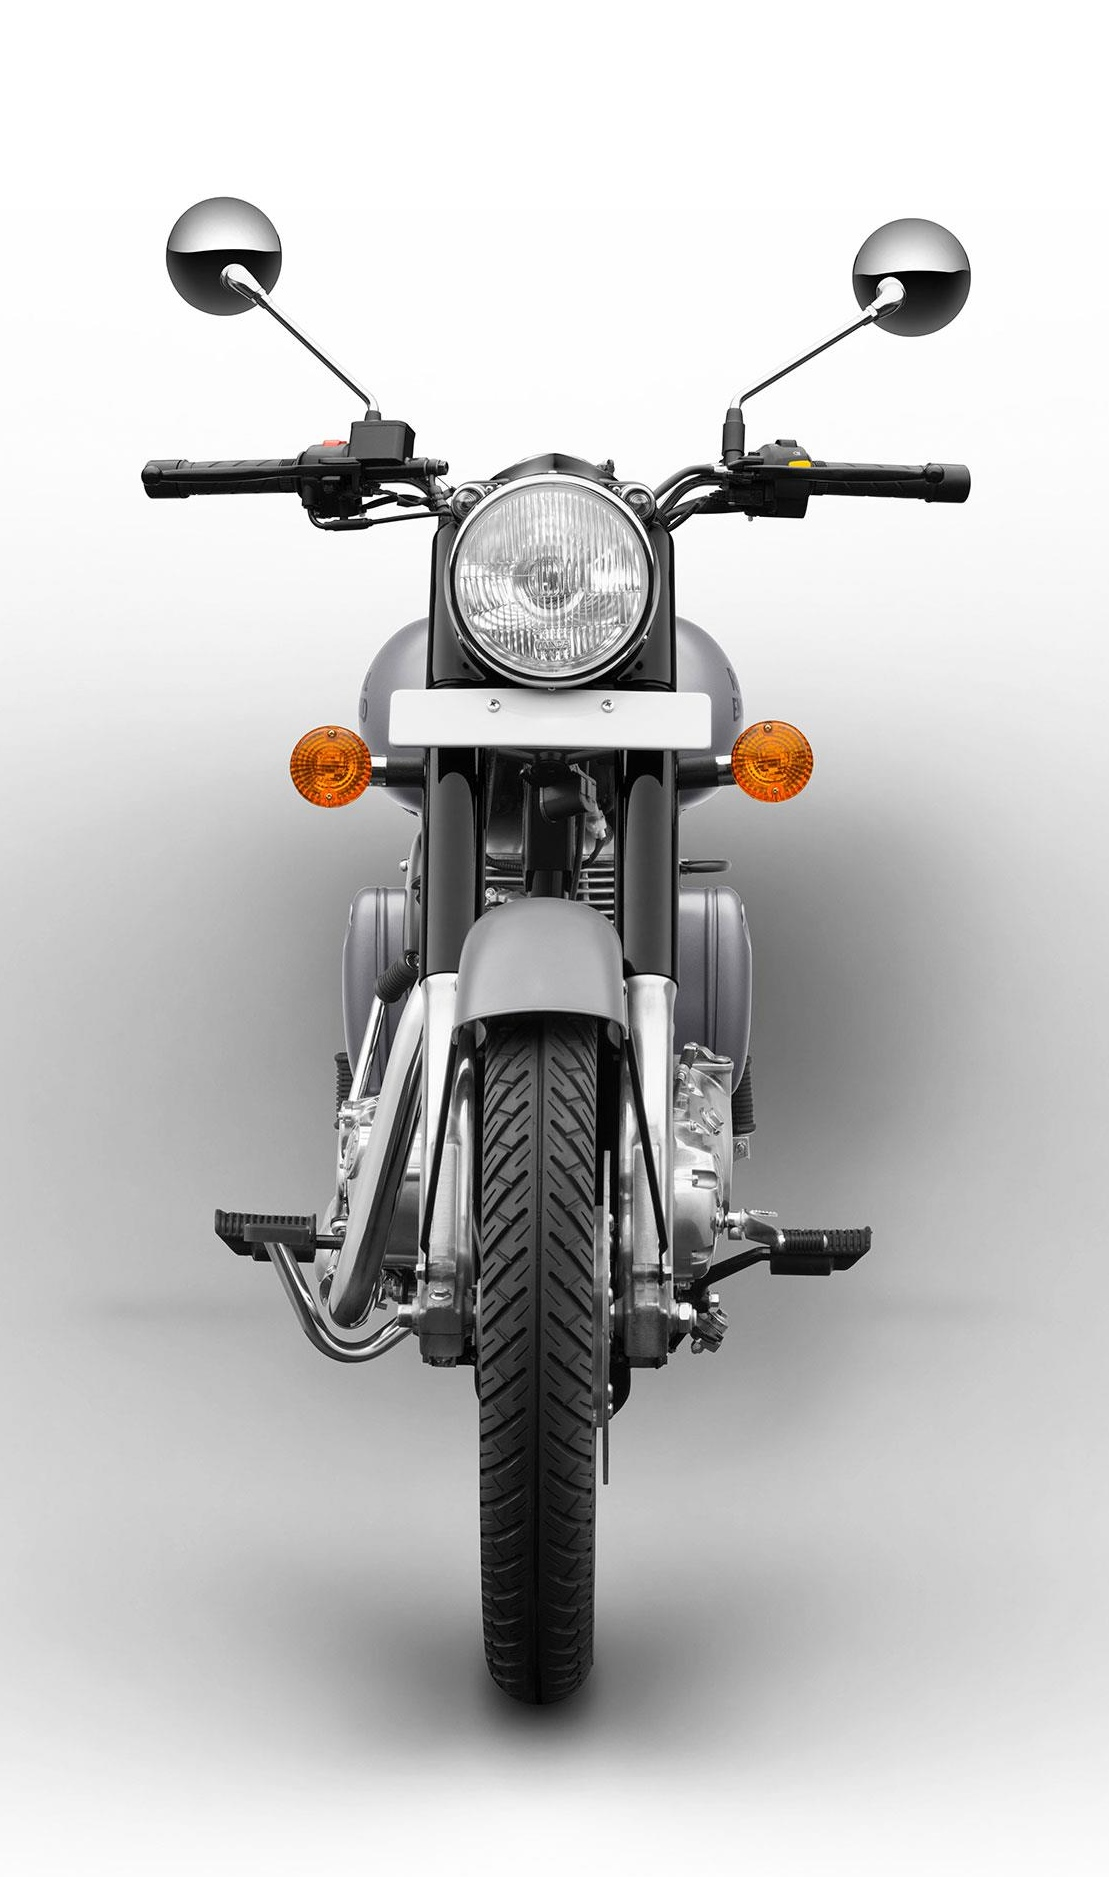 royalenfield_classic500_gunmetal_04jpg